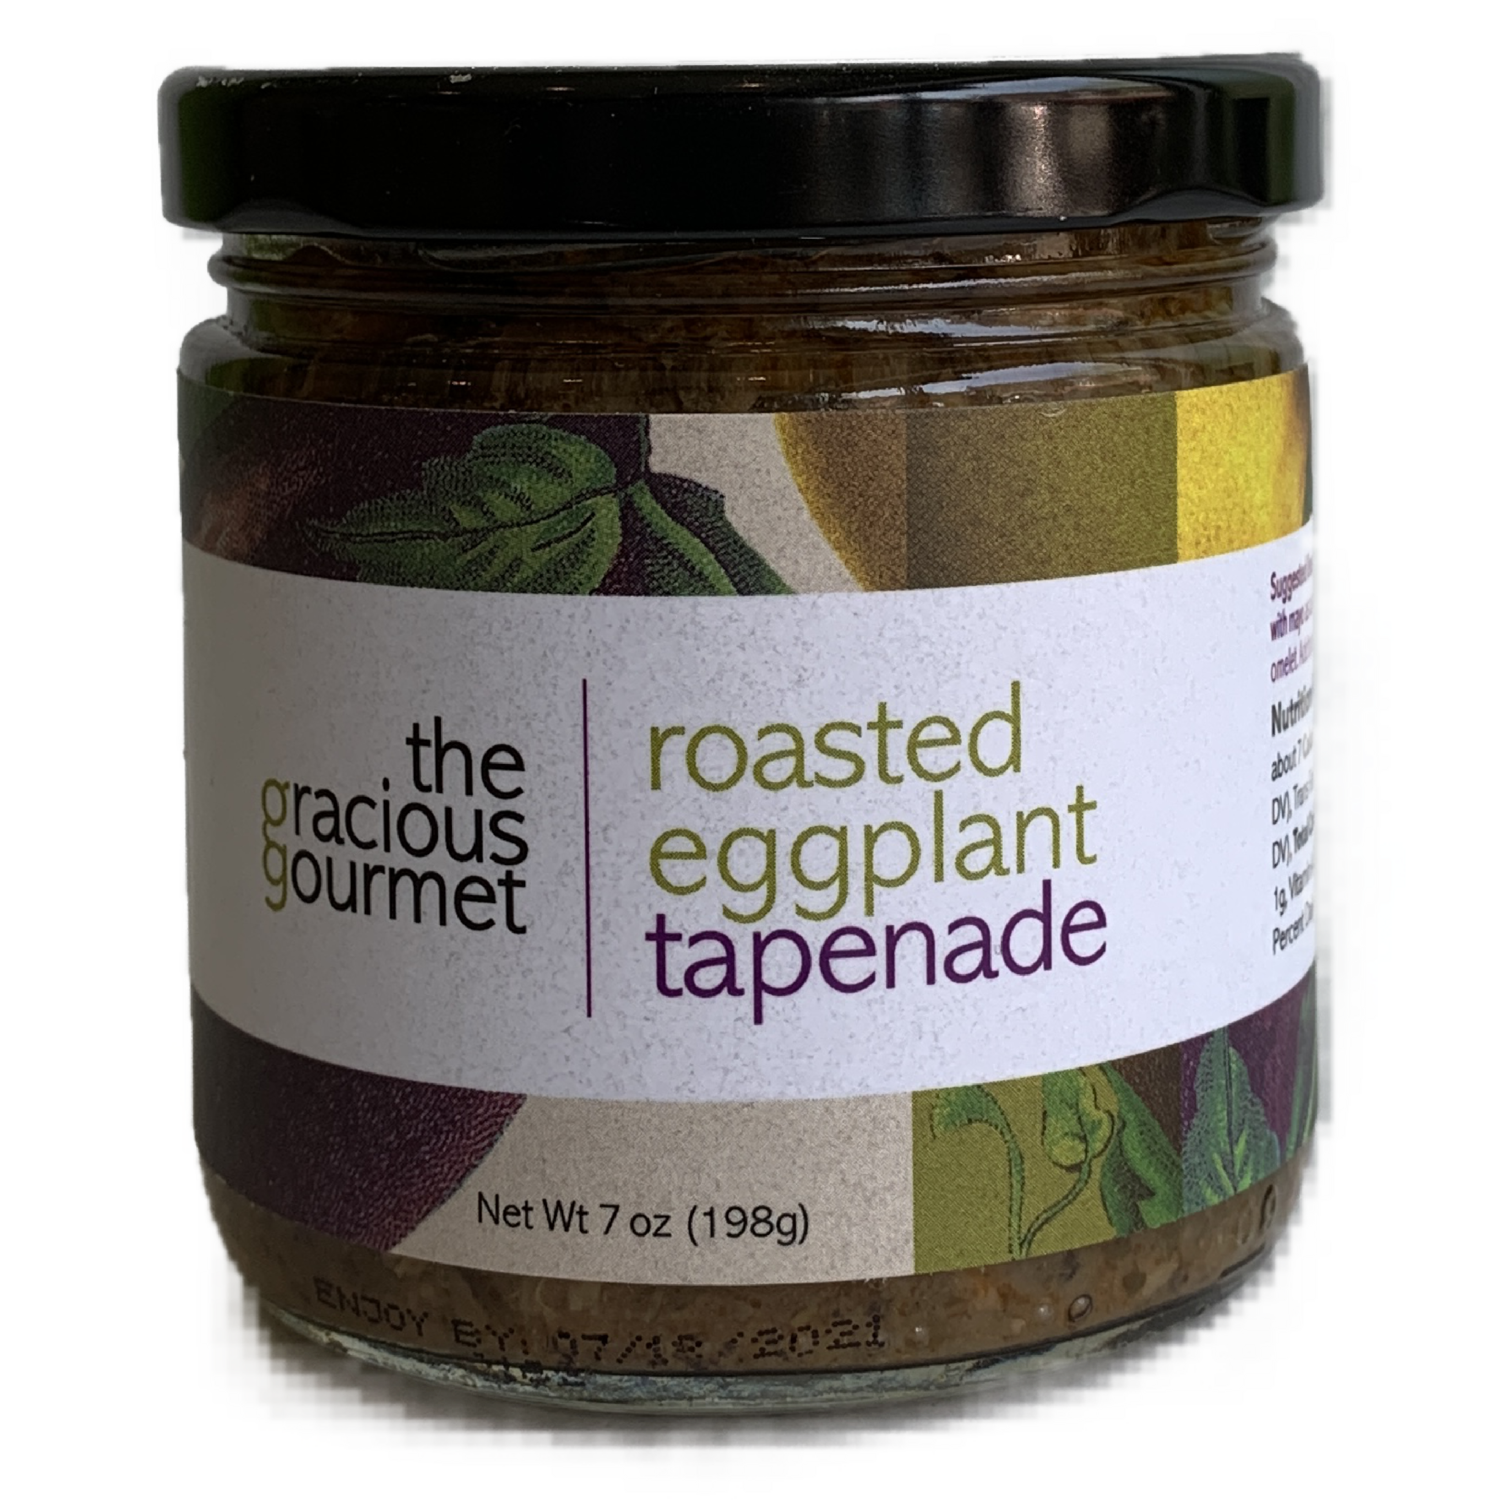 Roasted eggplant tapenade gracious gourmet